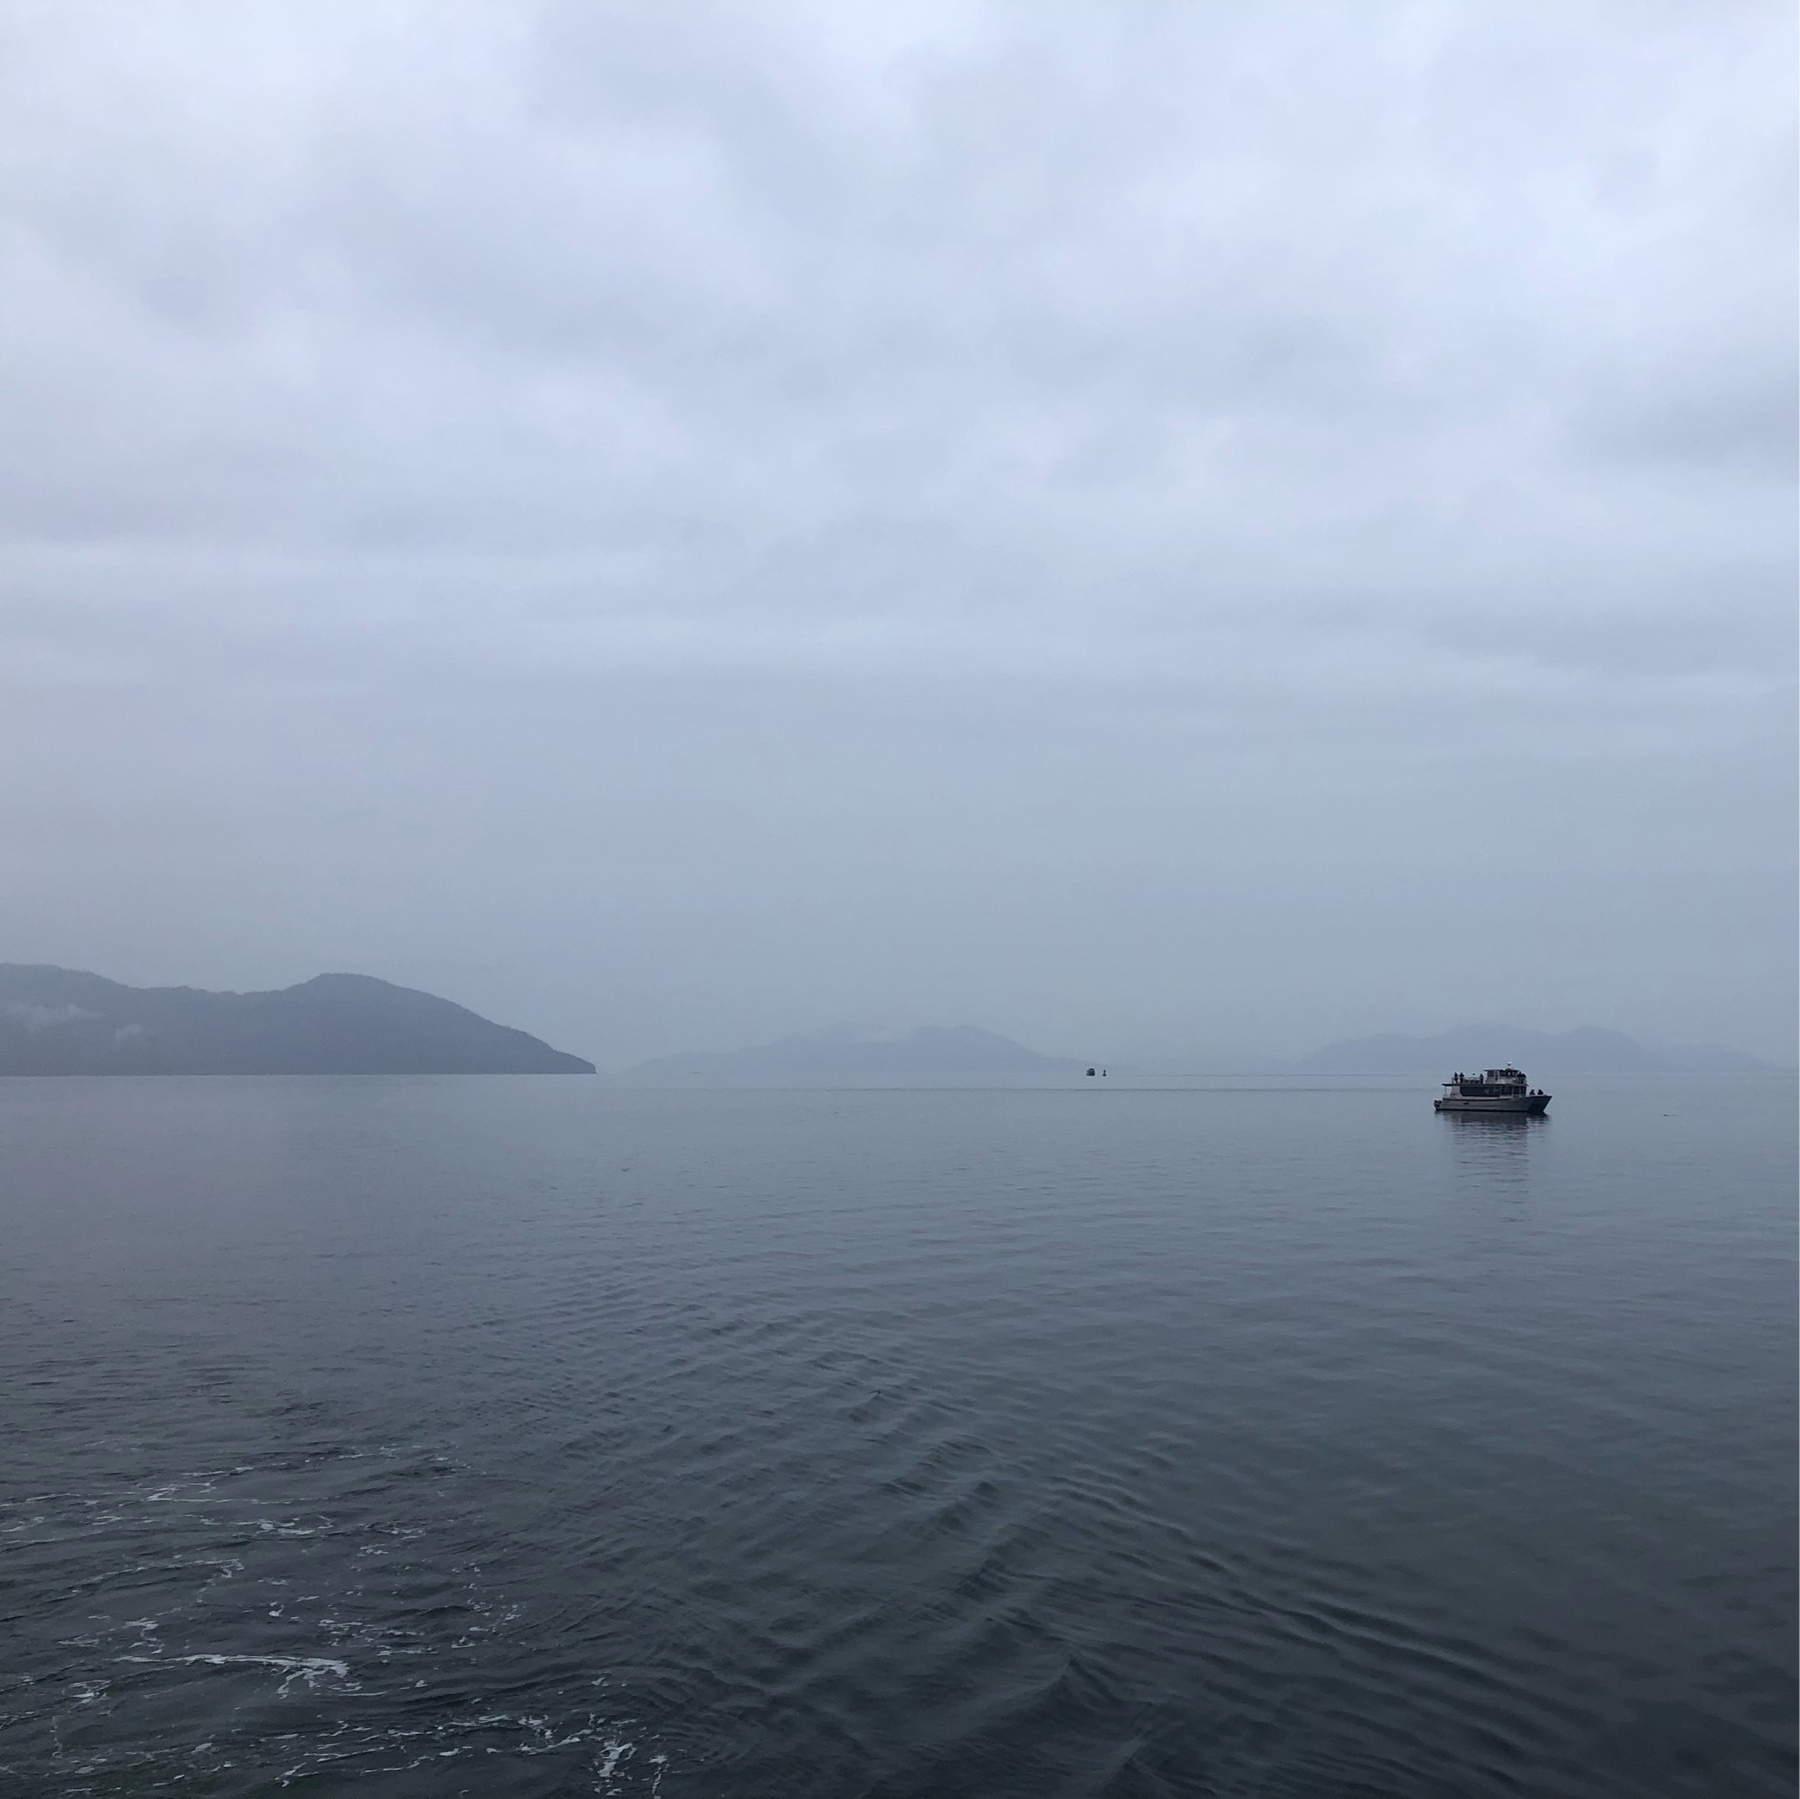 A tiny whale watching boat in misty, desolate gray waters. A small island is half-hidden in mist.